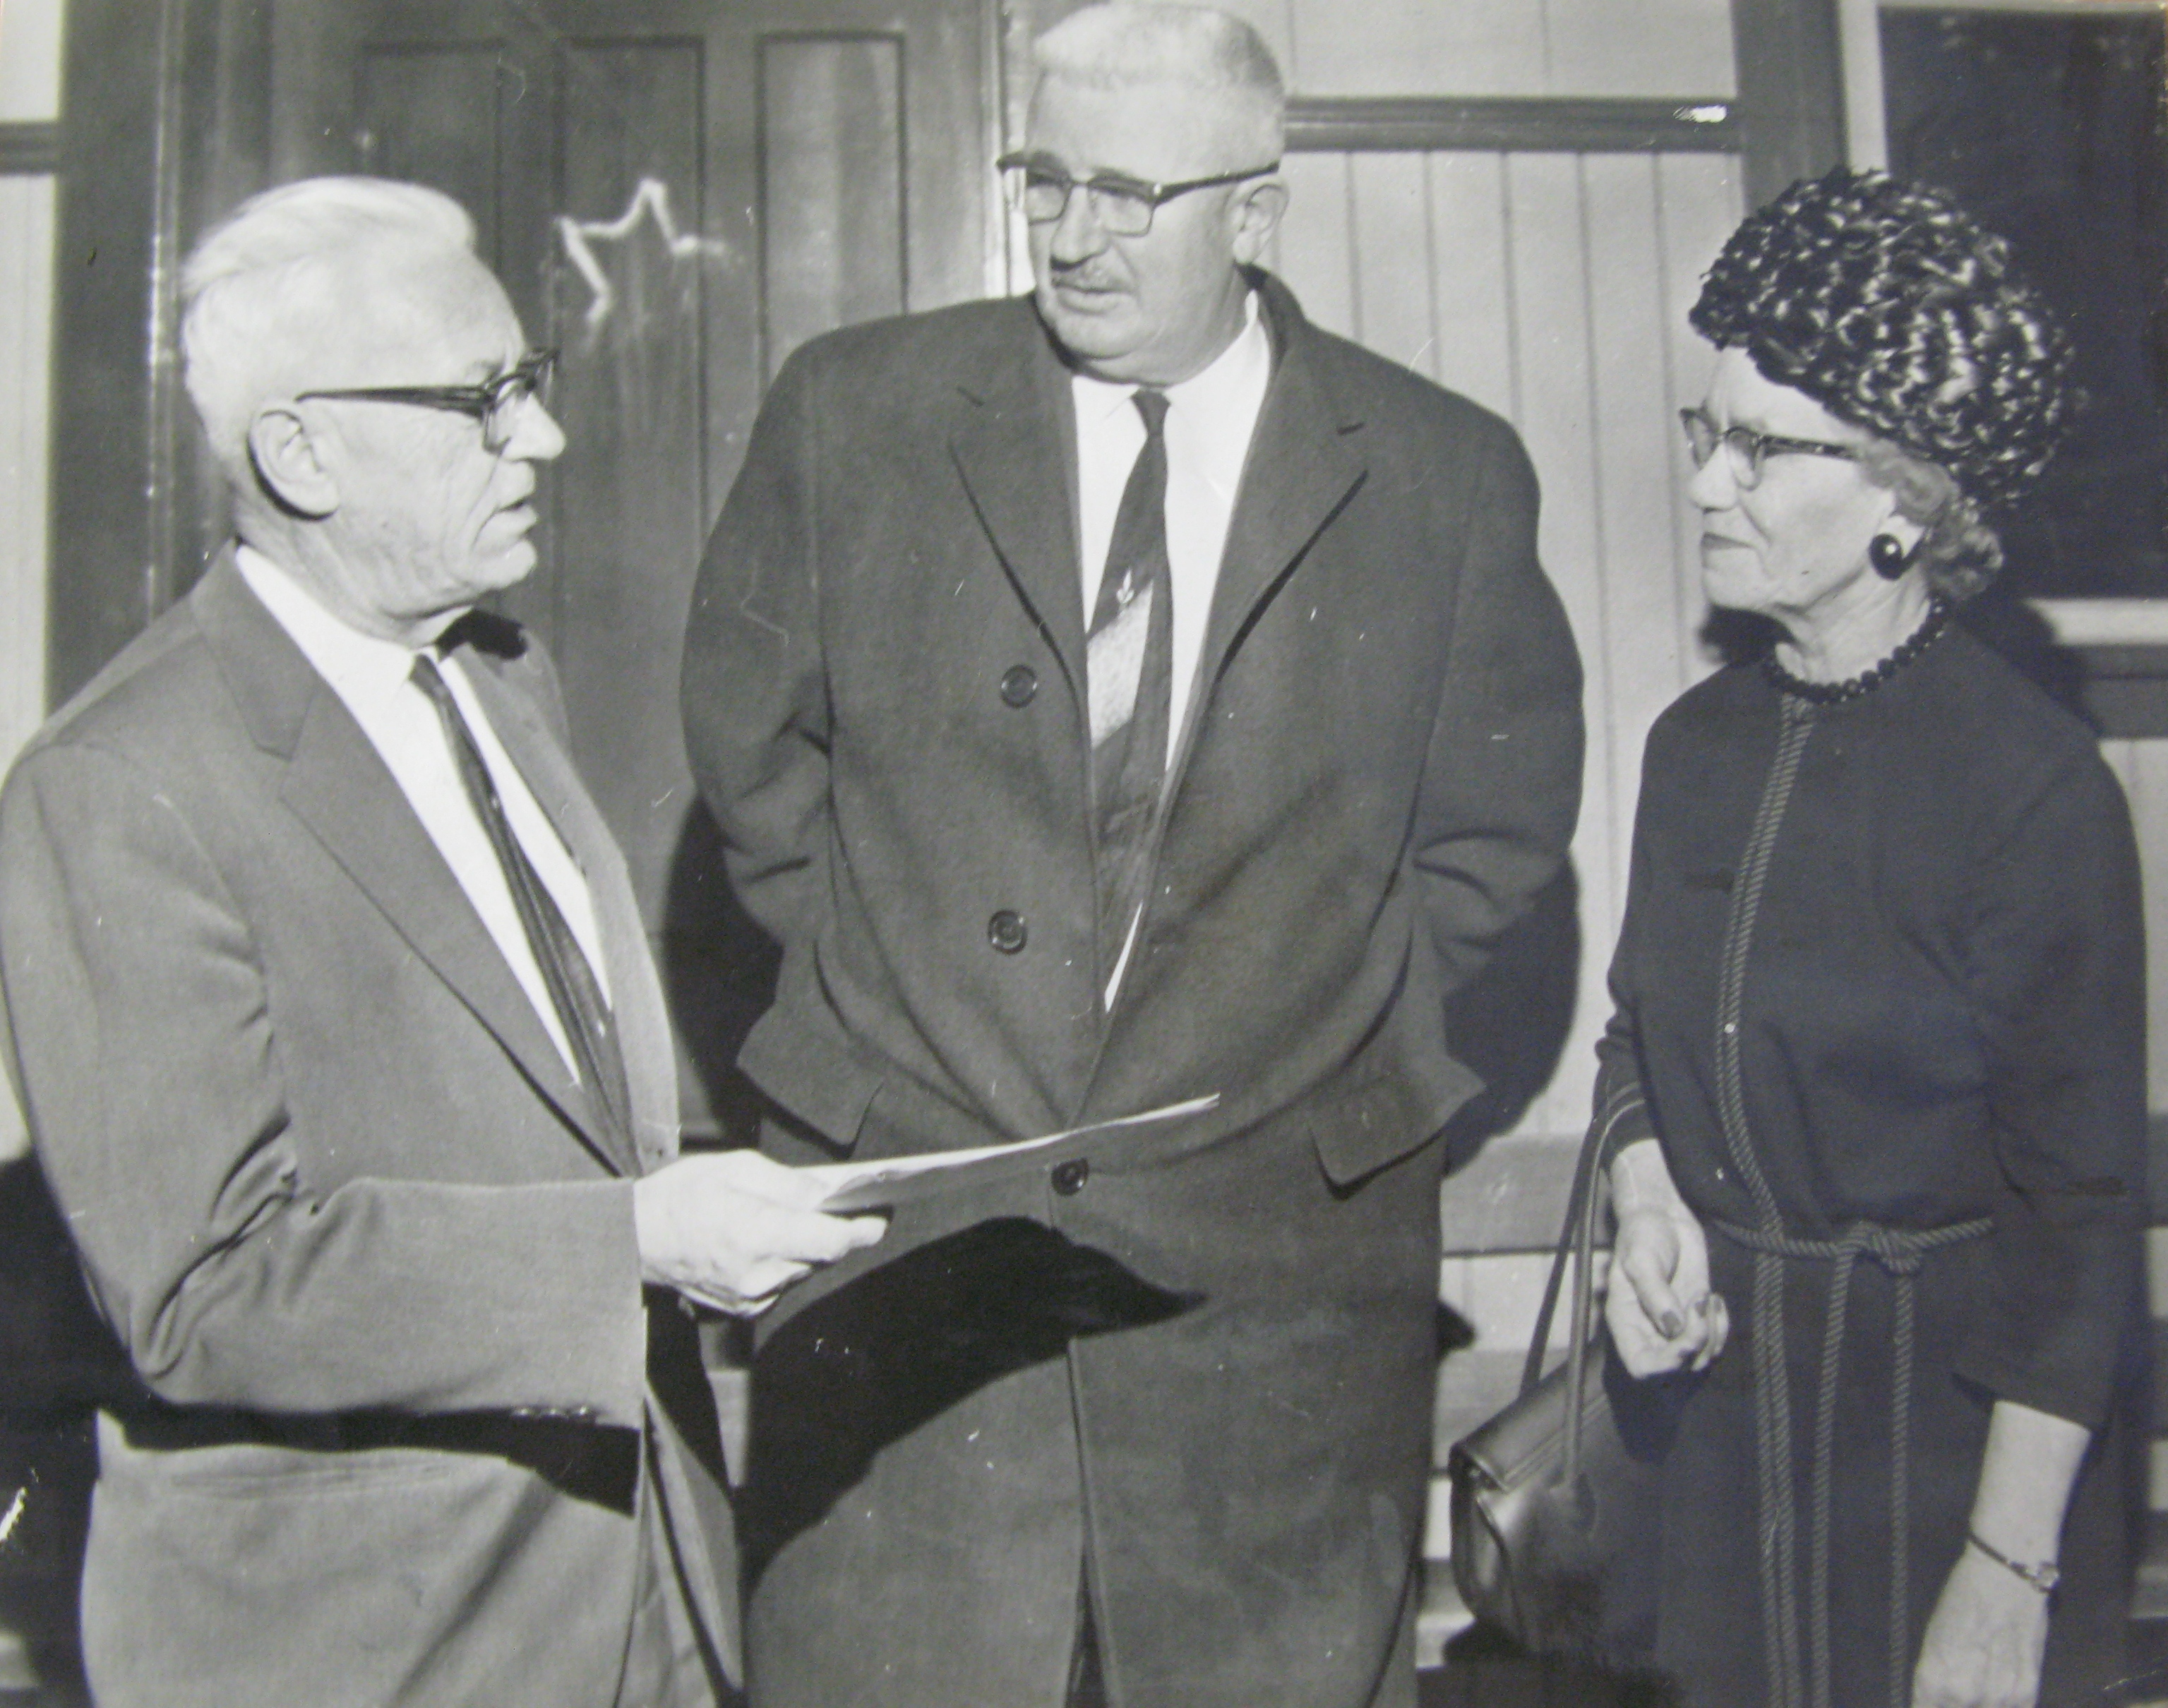 Elsie Gibbons, Warden of Pontiac County from 1959 to 1961.